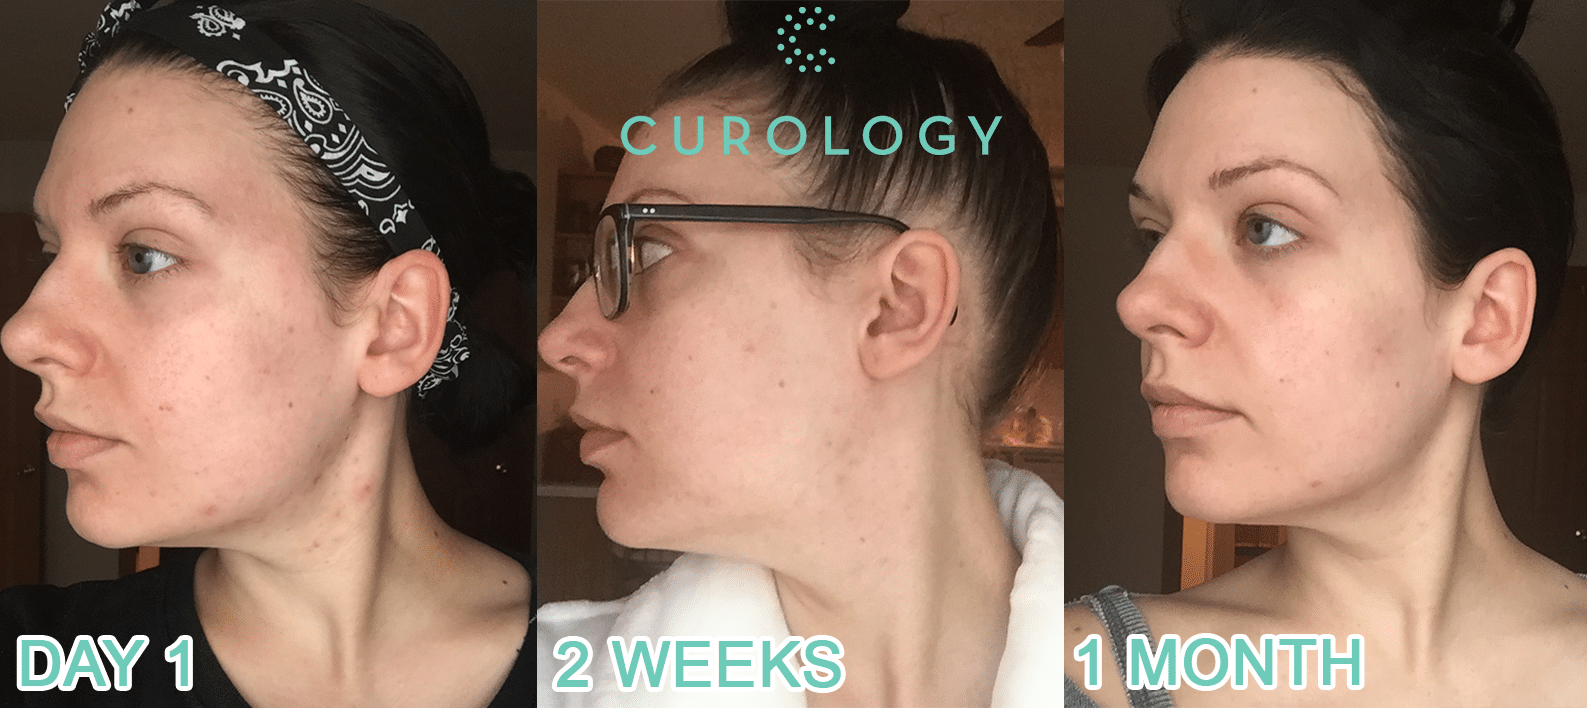 Curology Review | Before & After Photos (Day 1, 2 Weeks, & 1 Month)